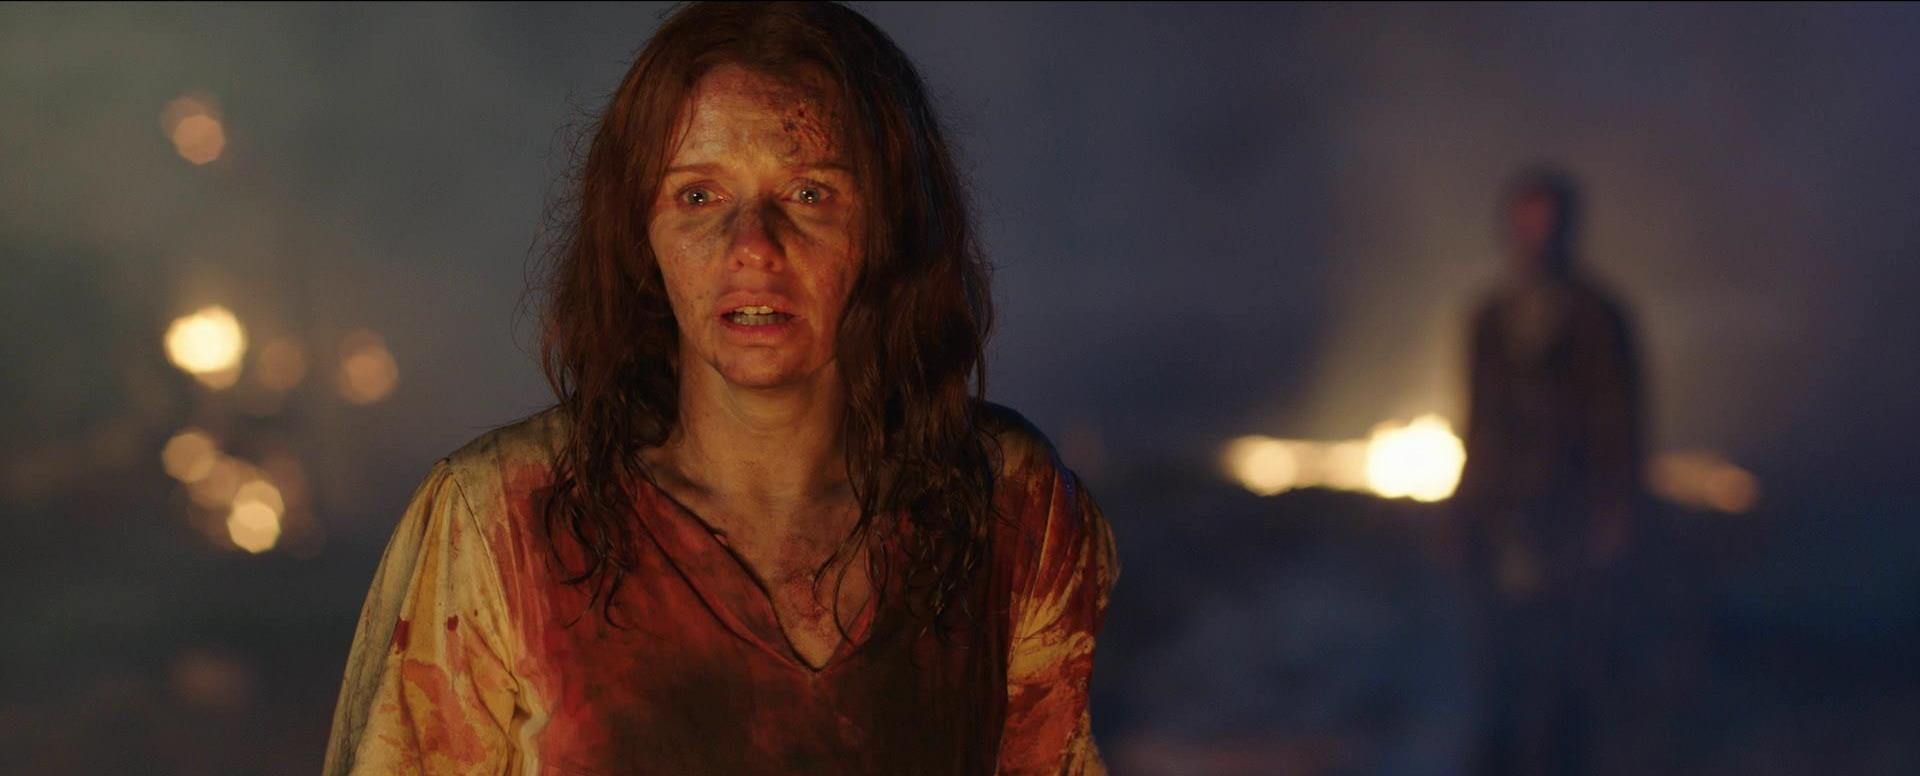 The Golem 2 - FrightFest 2018: 13 Films You Can't Miss This Year